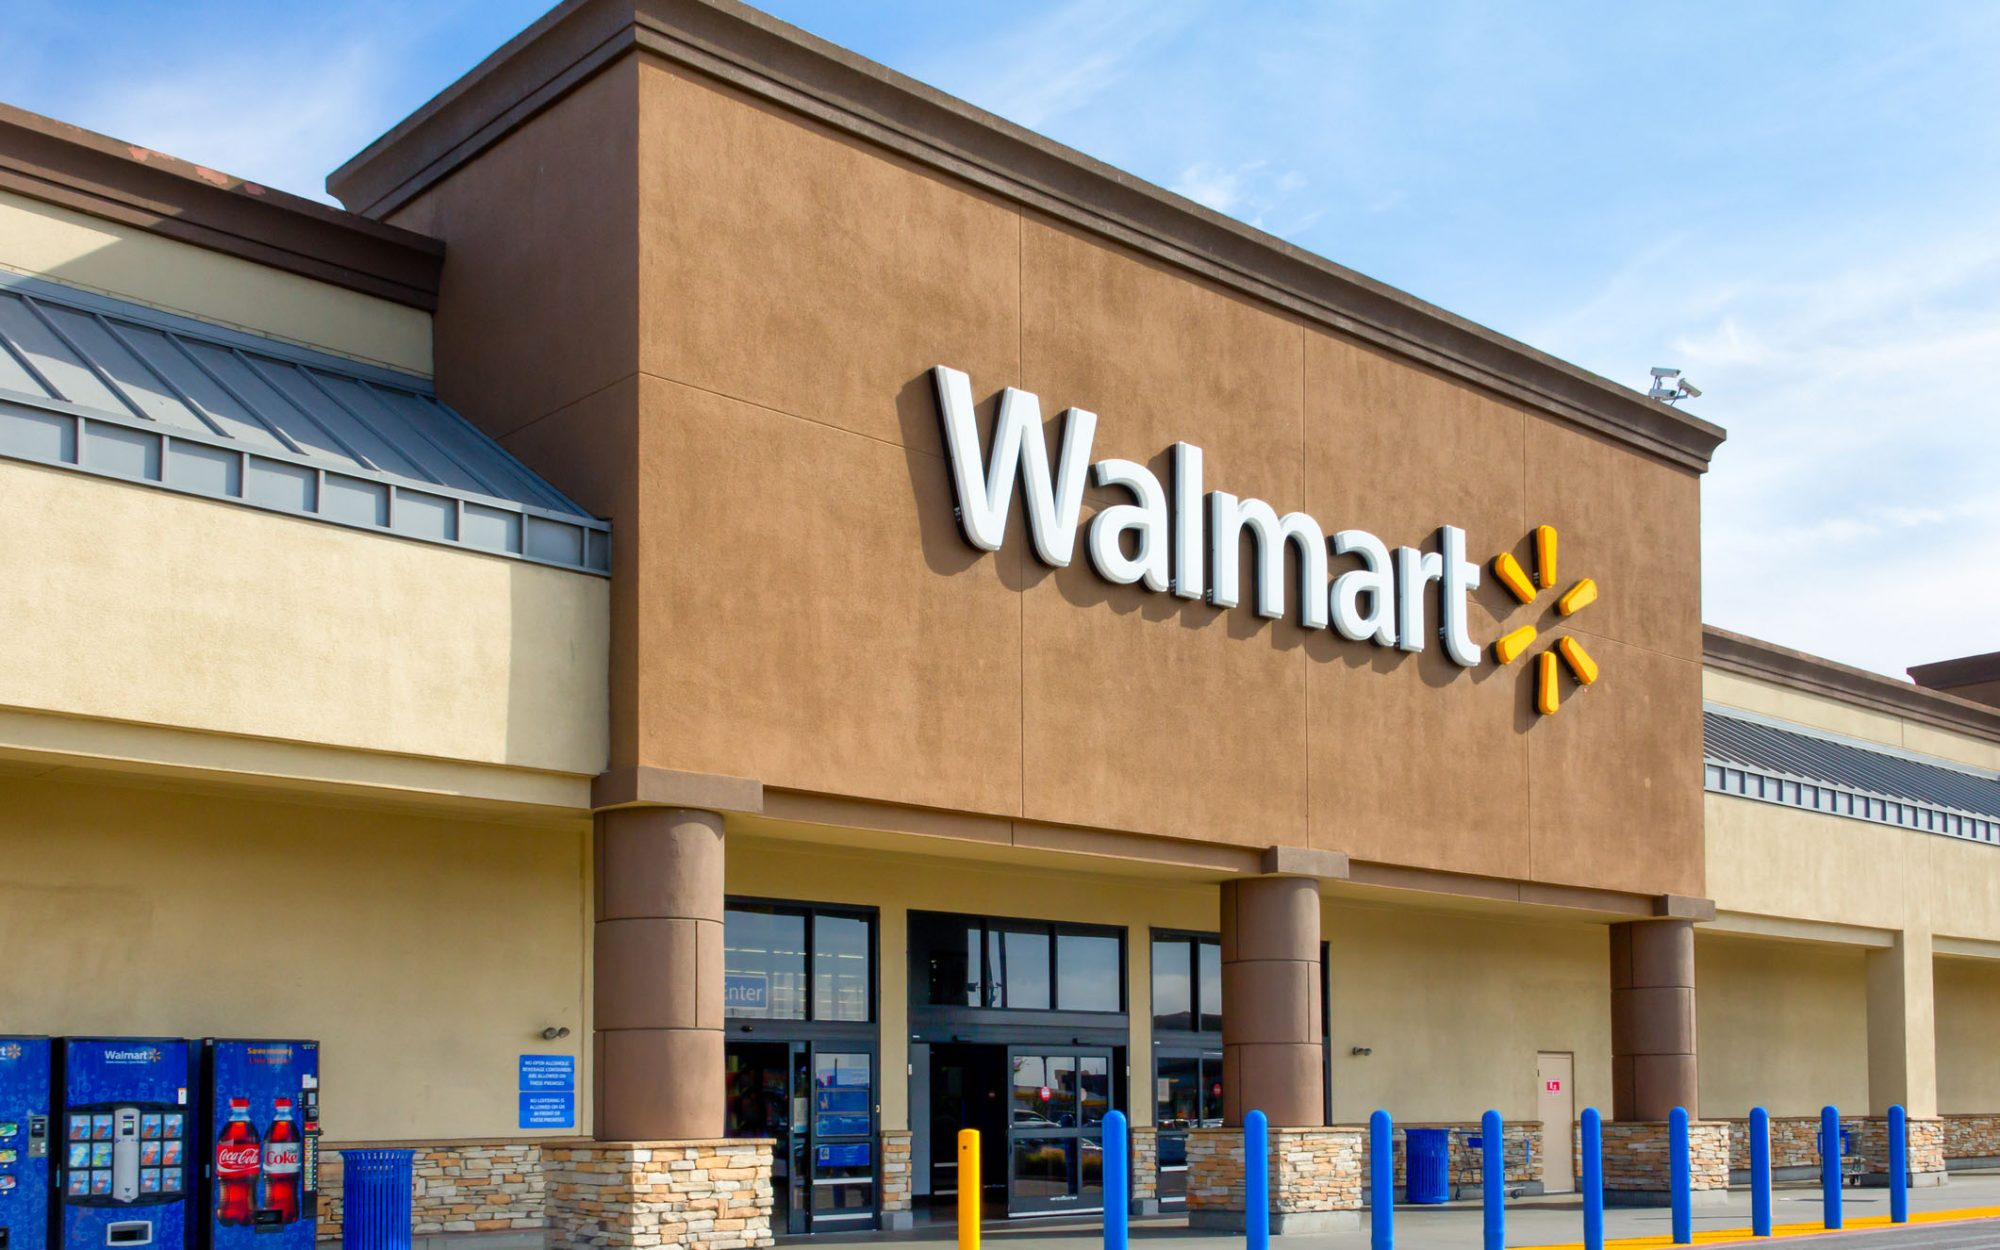 Walmart employees will now deliver packages to your home